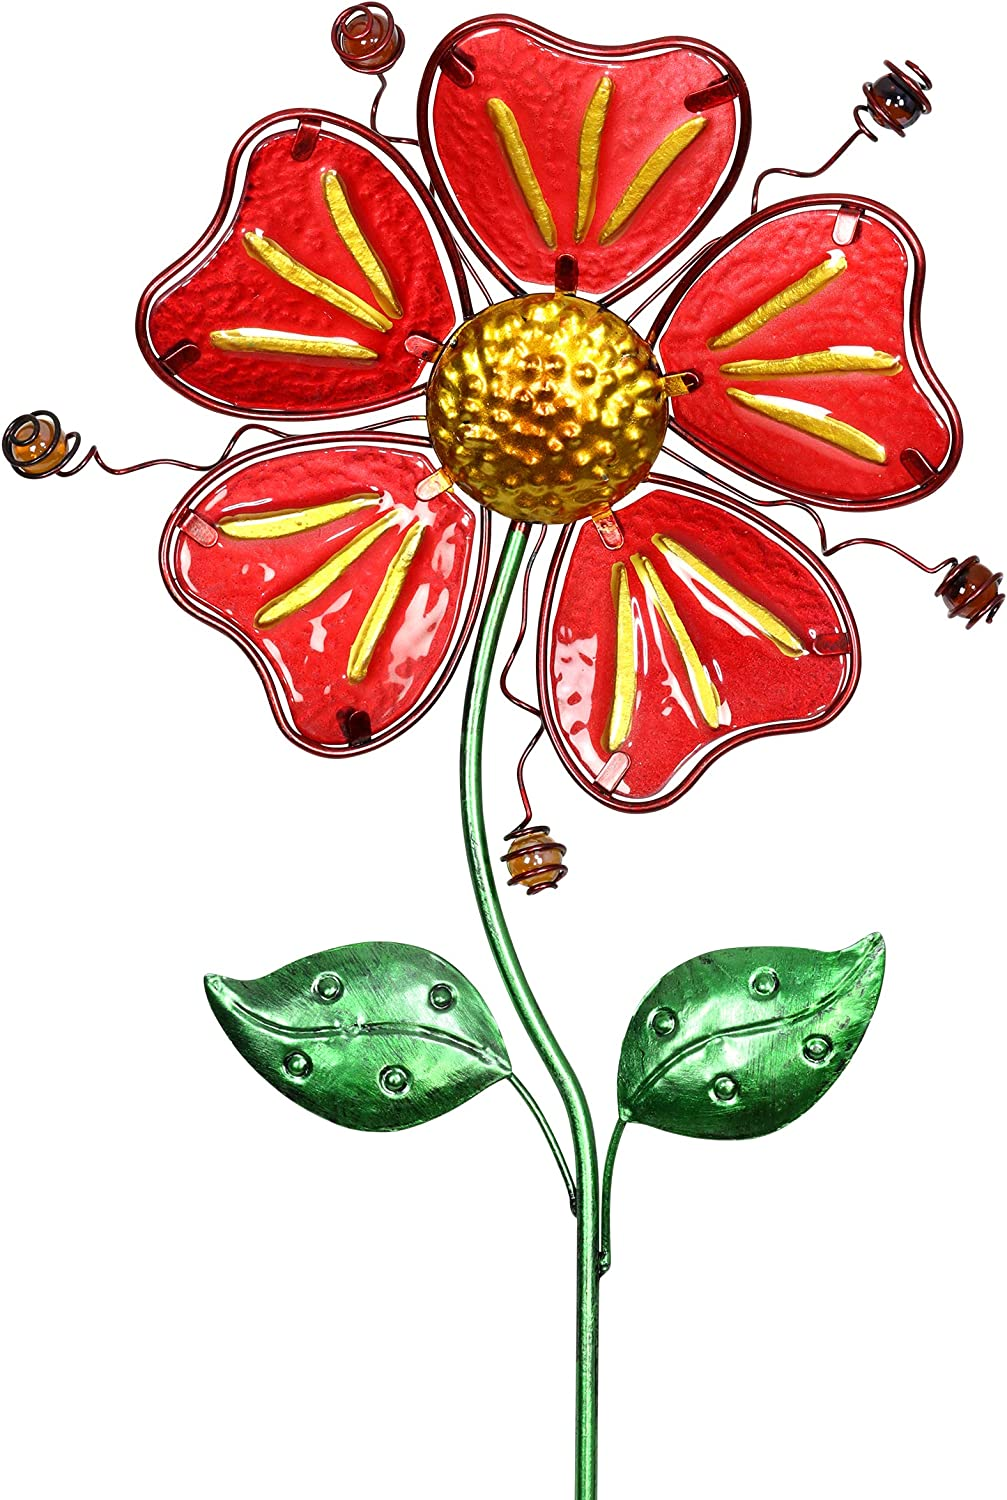 Exhart Whimsical Red Flower Garden Stake in Glass and Metal - Glass Red Flower Metal Stake Hand-Painted with Fade-Resistant Metallic Coat - Flower Stake Garden Décor, Outdoor Ornament, 11 x 36 Inches